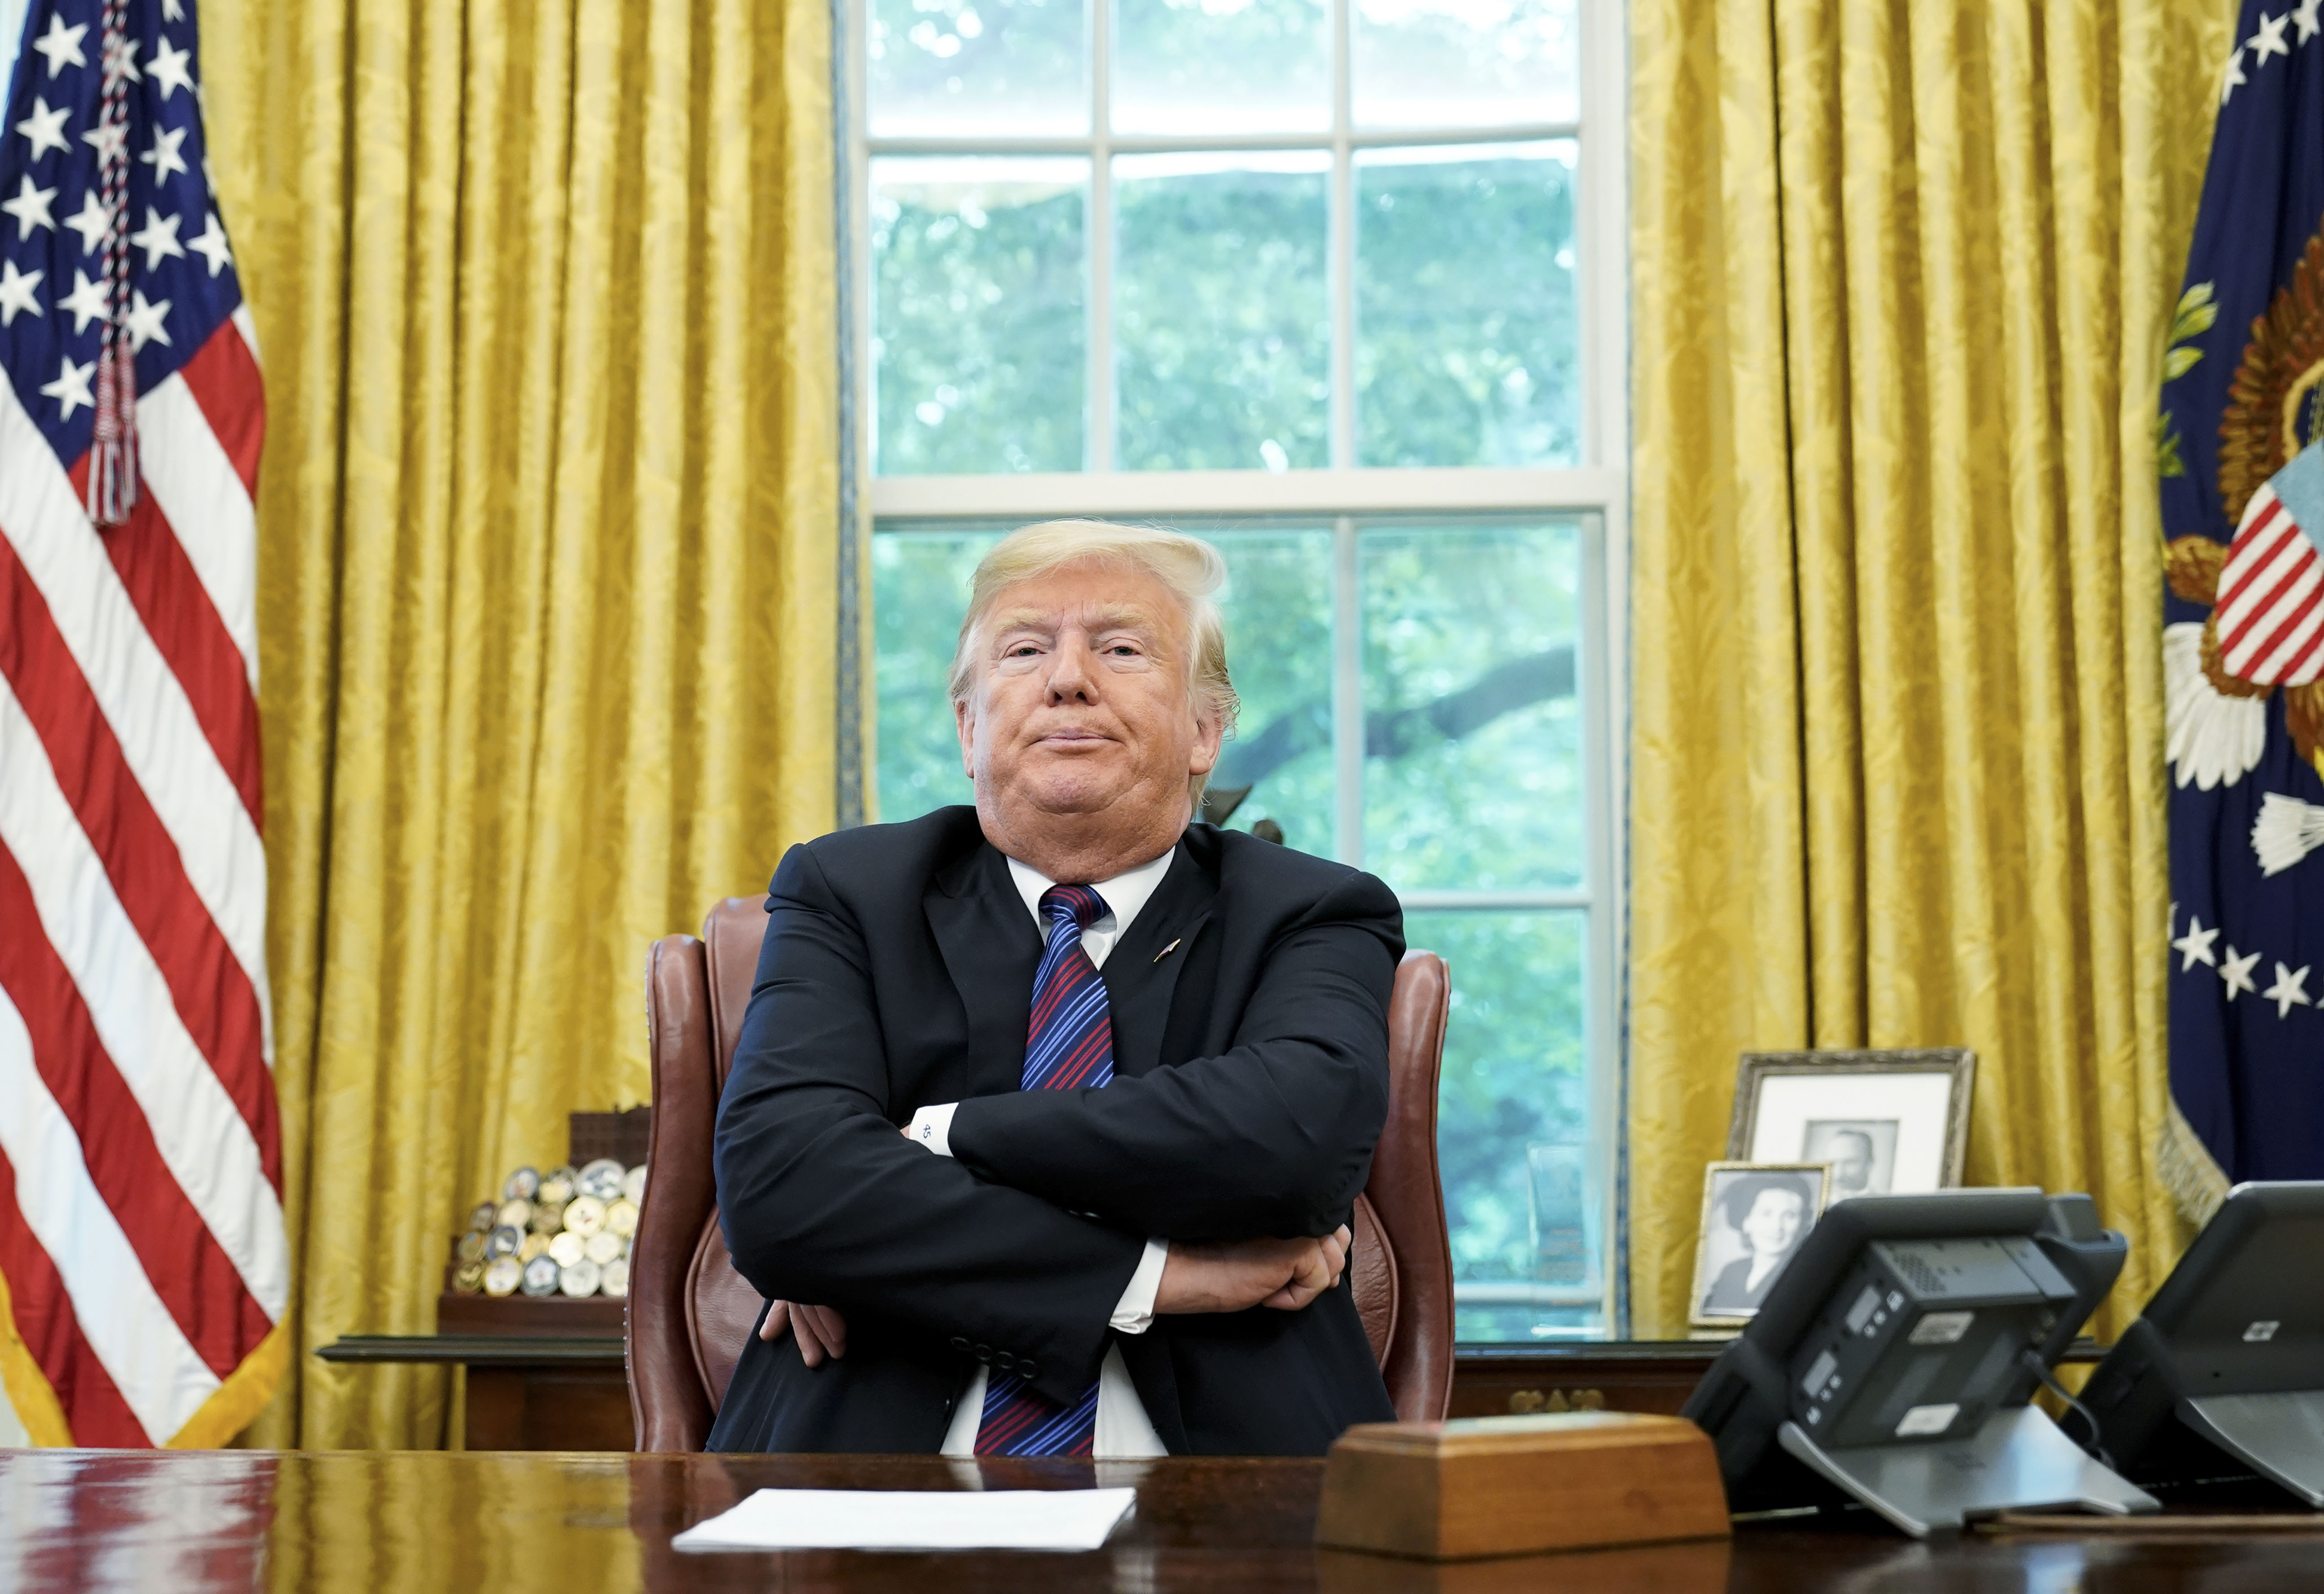 US President Donald Trump speaks to reporters after a phone conversation with Mexico's President Enrique Pena Nieto on trade in the Oval Office of the White House on Aug. 27